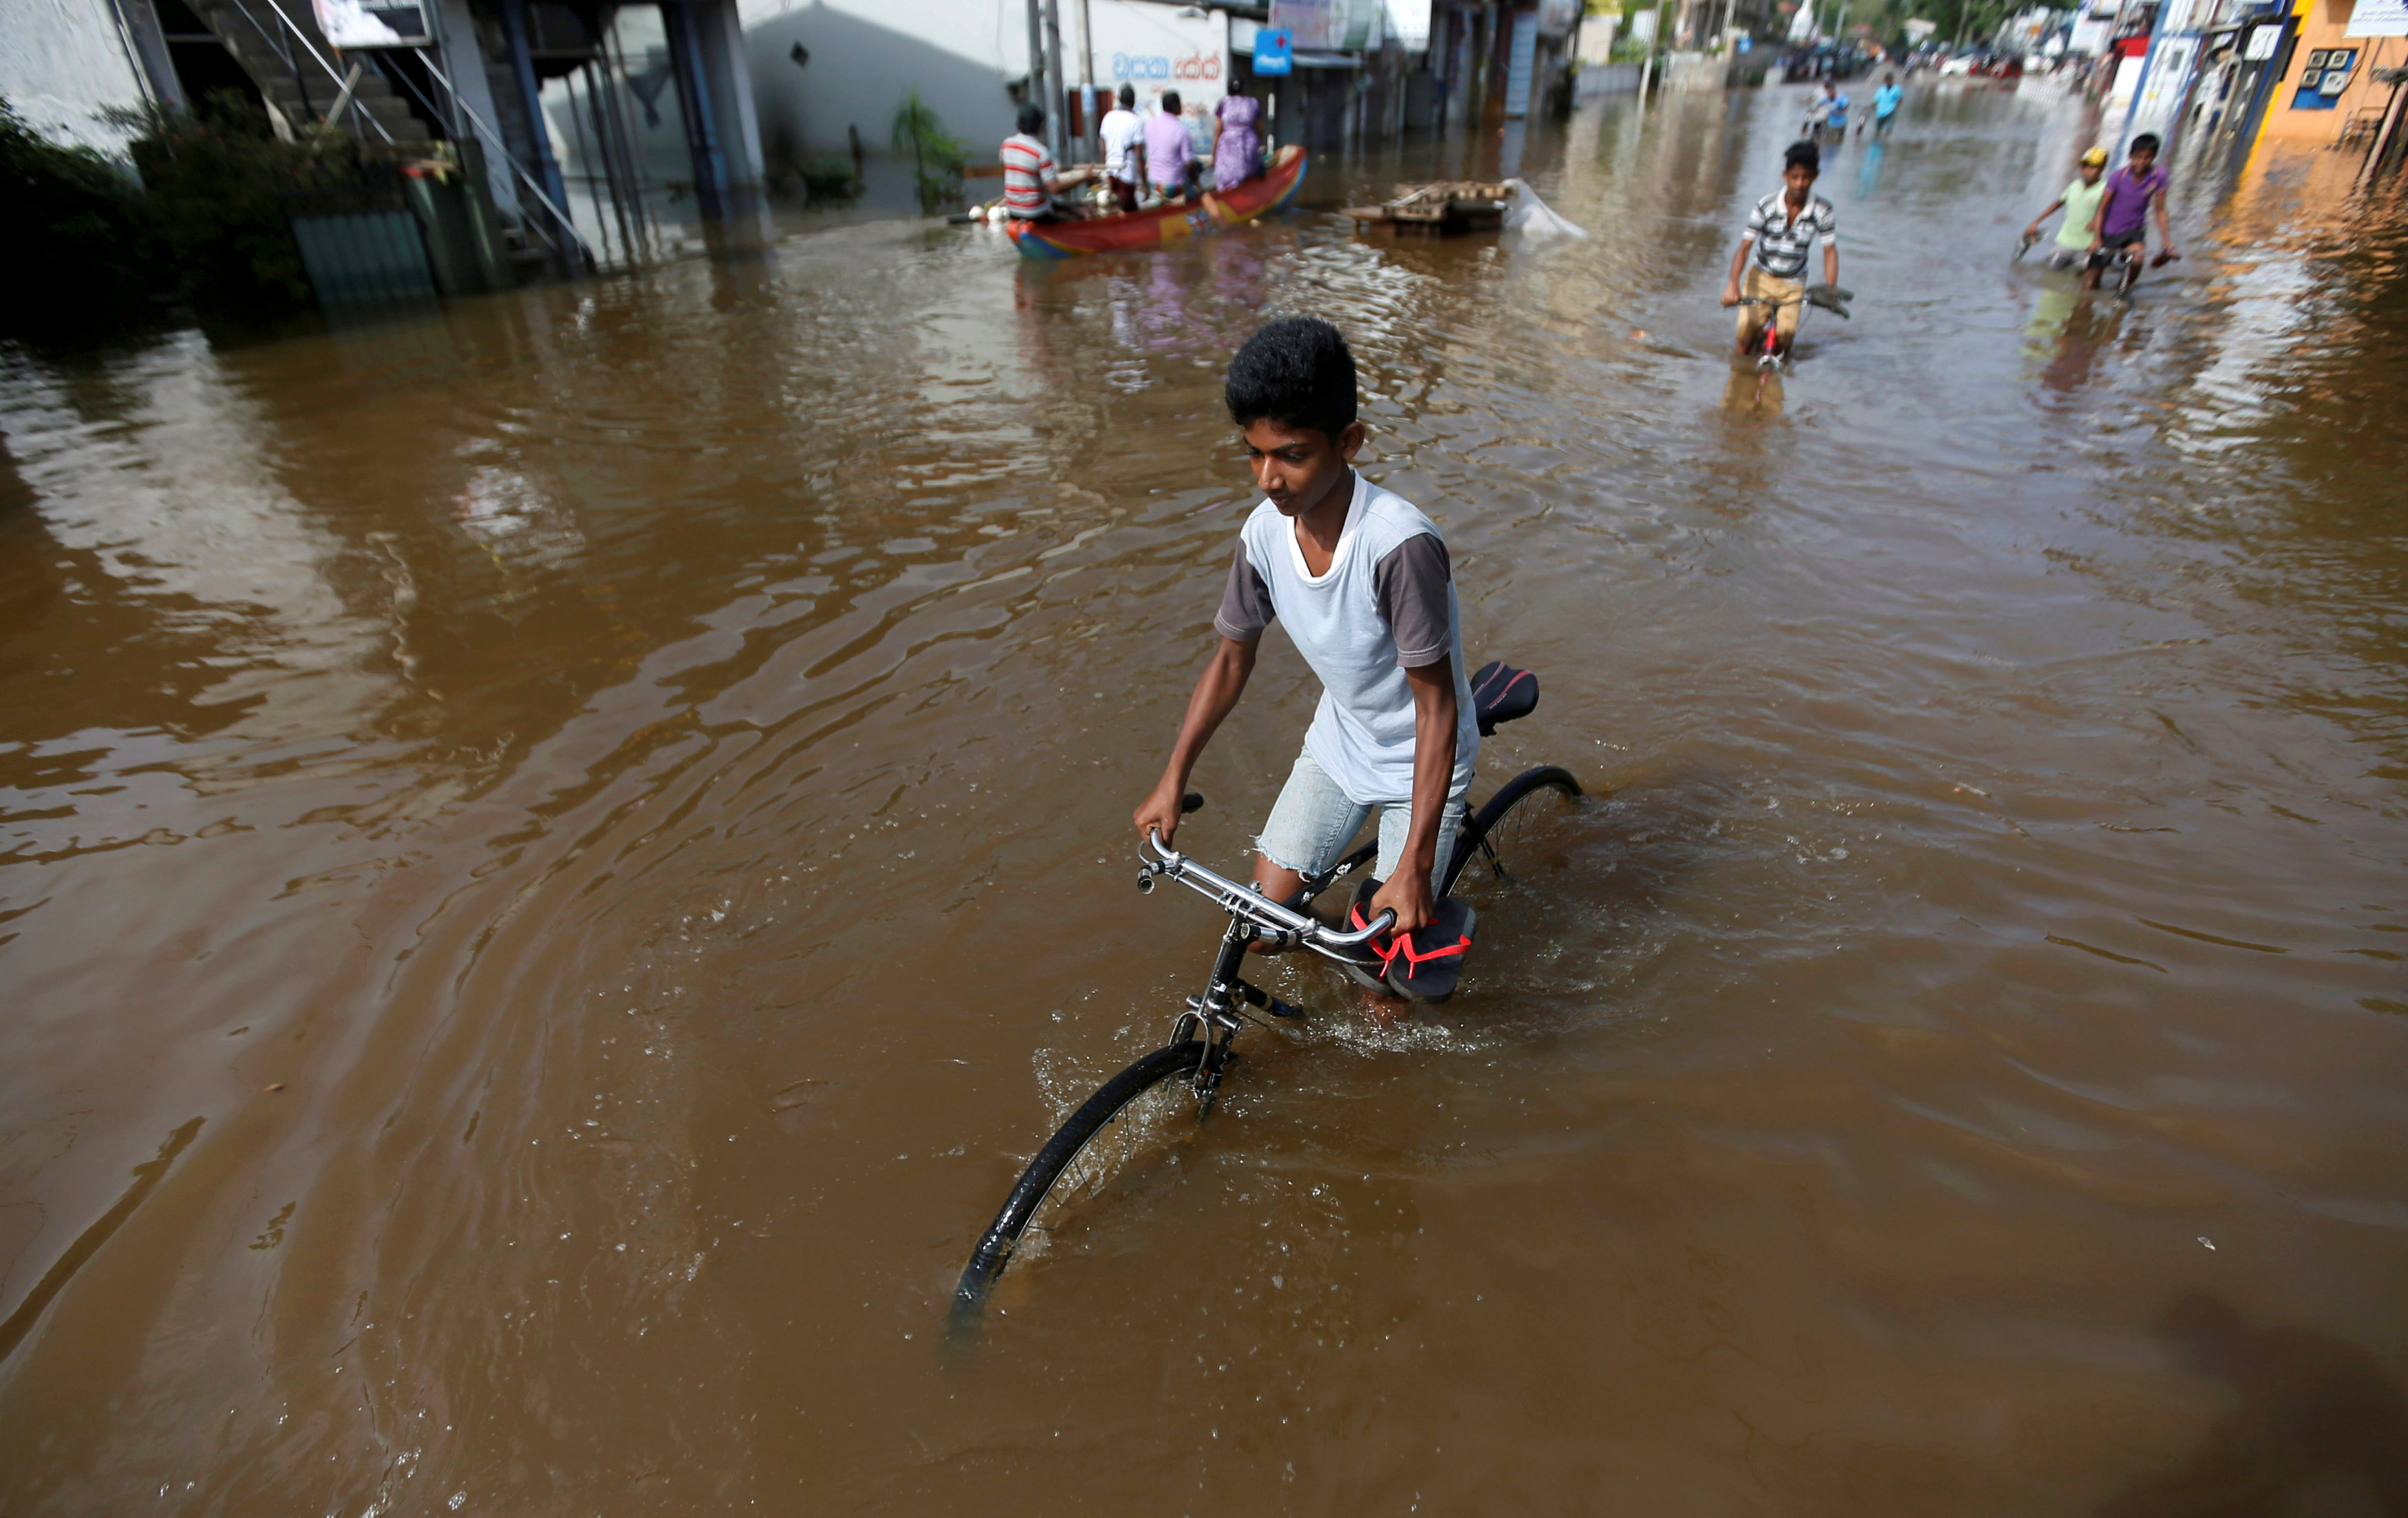 A boy rides his bike along a flooded road in Nagoda village, in Kalutara, Sri Lanka May 29, 2017.